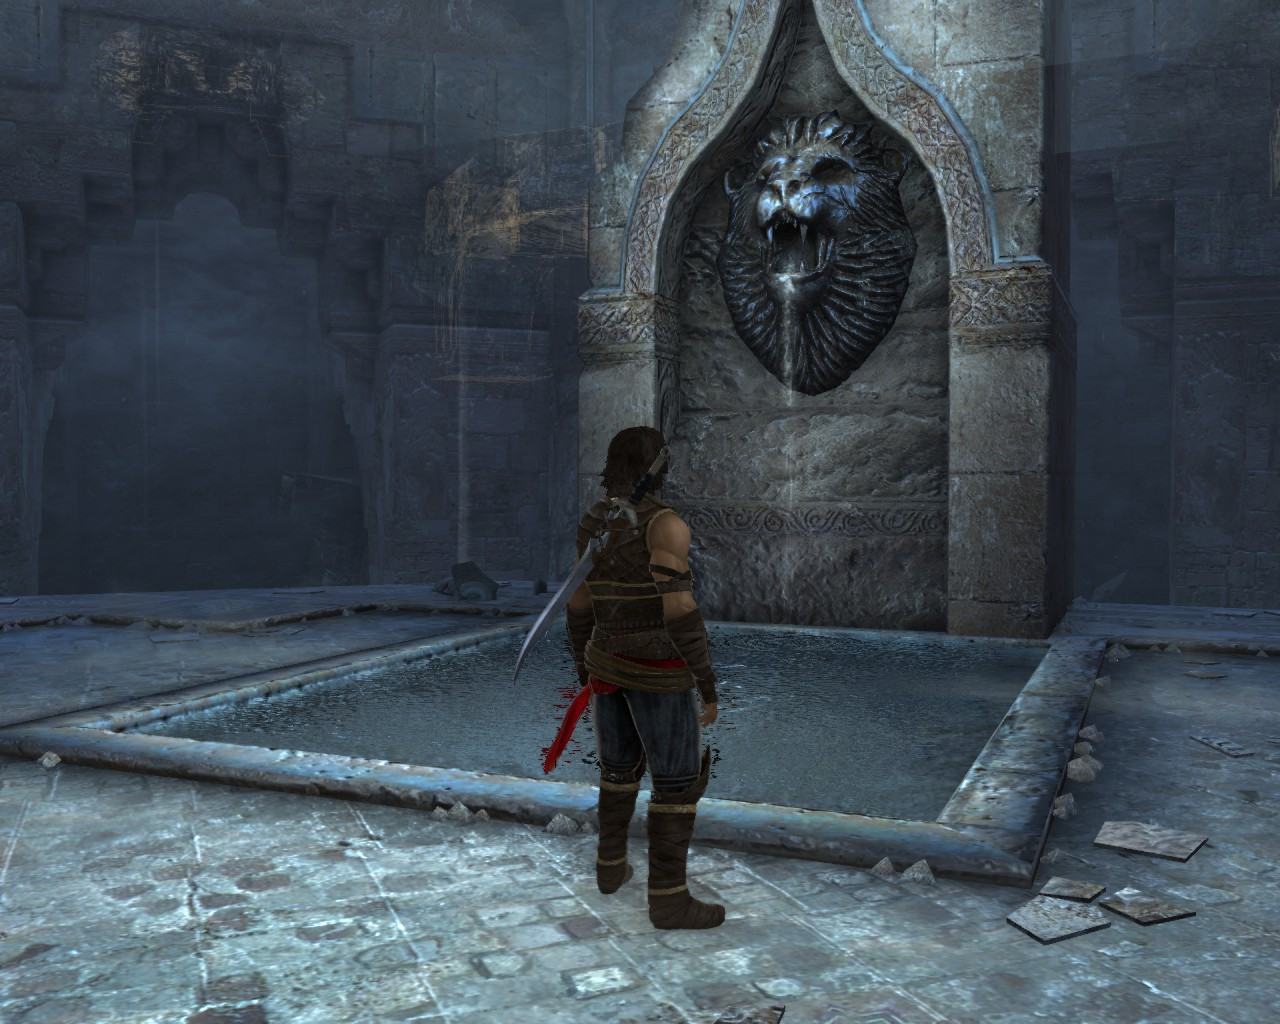 Prince of Persia 2014-06-04 19-24-52-19.jpg - Prince of Persia: The Forgotten Sands